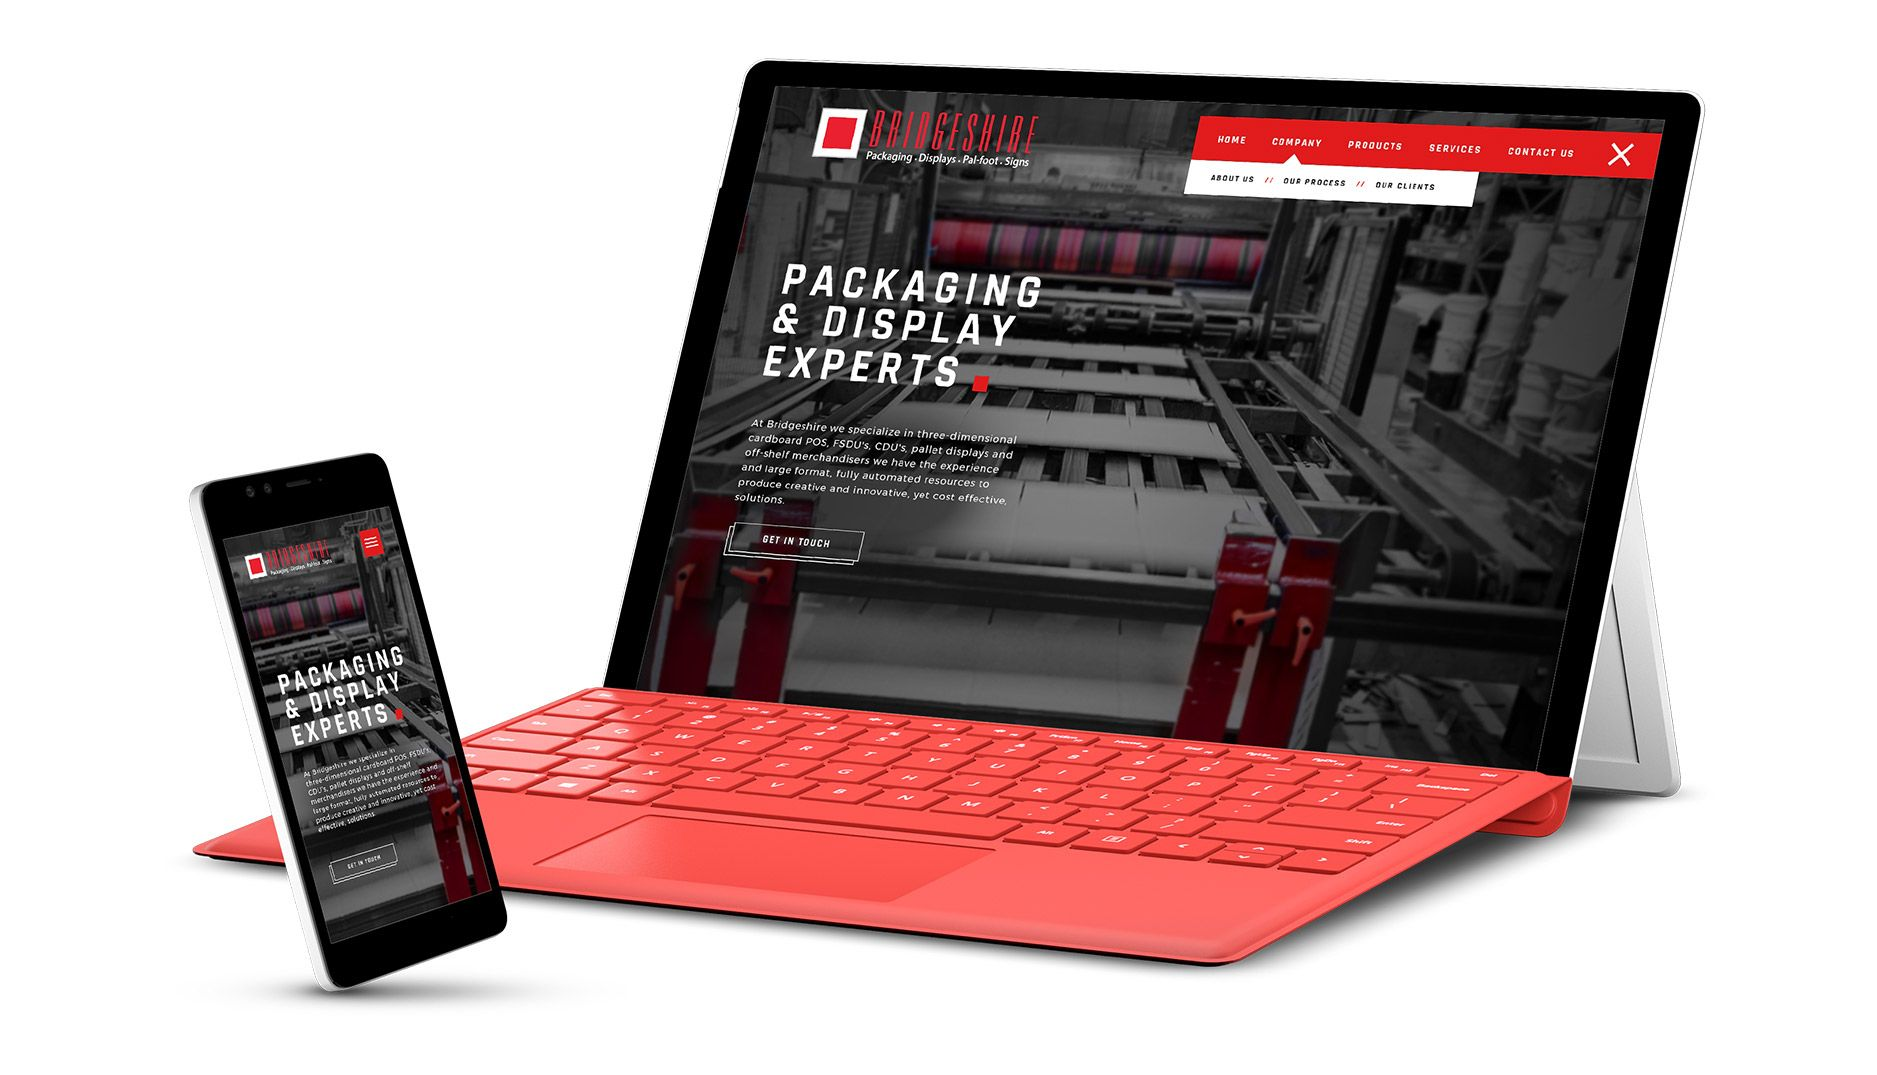 Bridgeshire packaging responsive website design on mobile devices